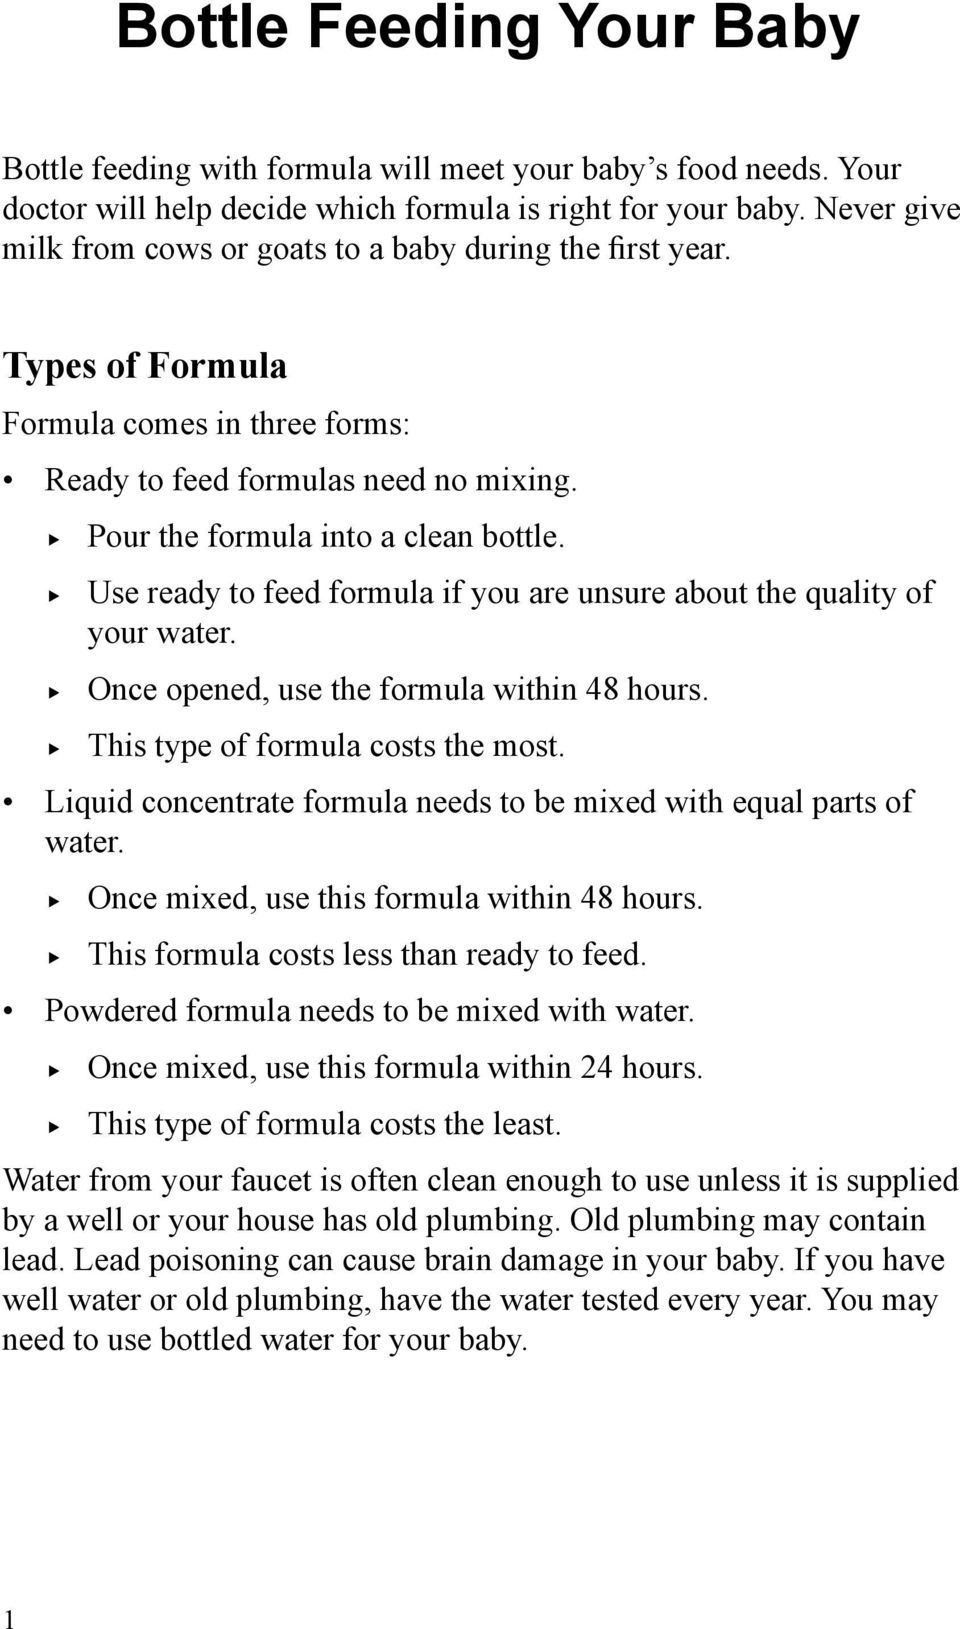 Use ready to feed formula if you are unsure about the quality of your water. Once opened, use the formula within 48 hours. This type of formula costs the most.